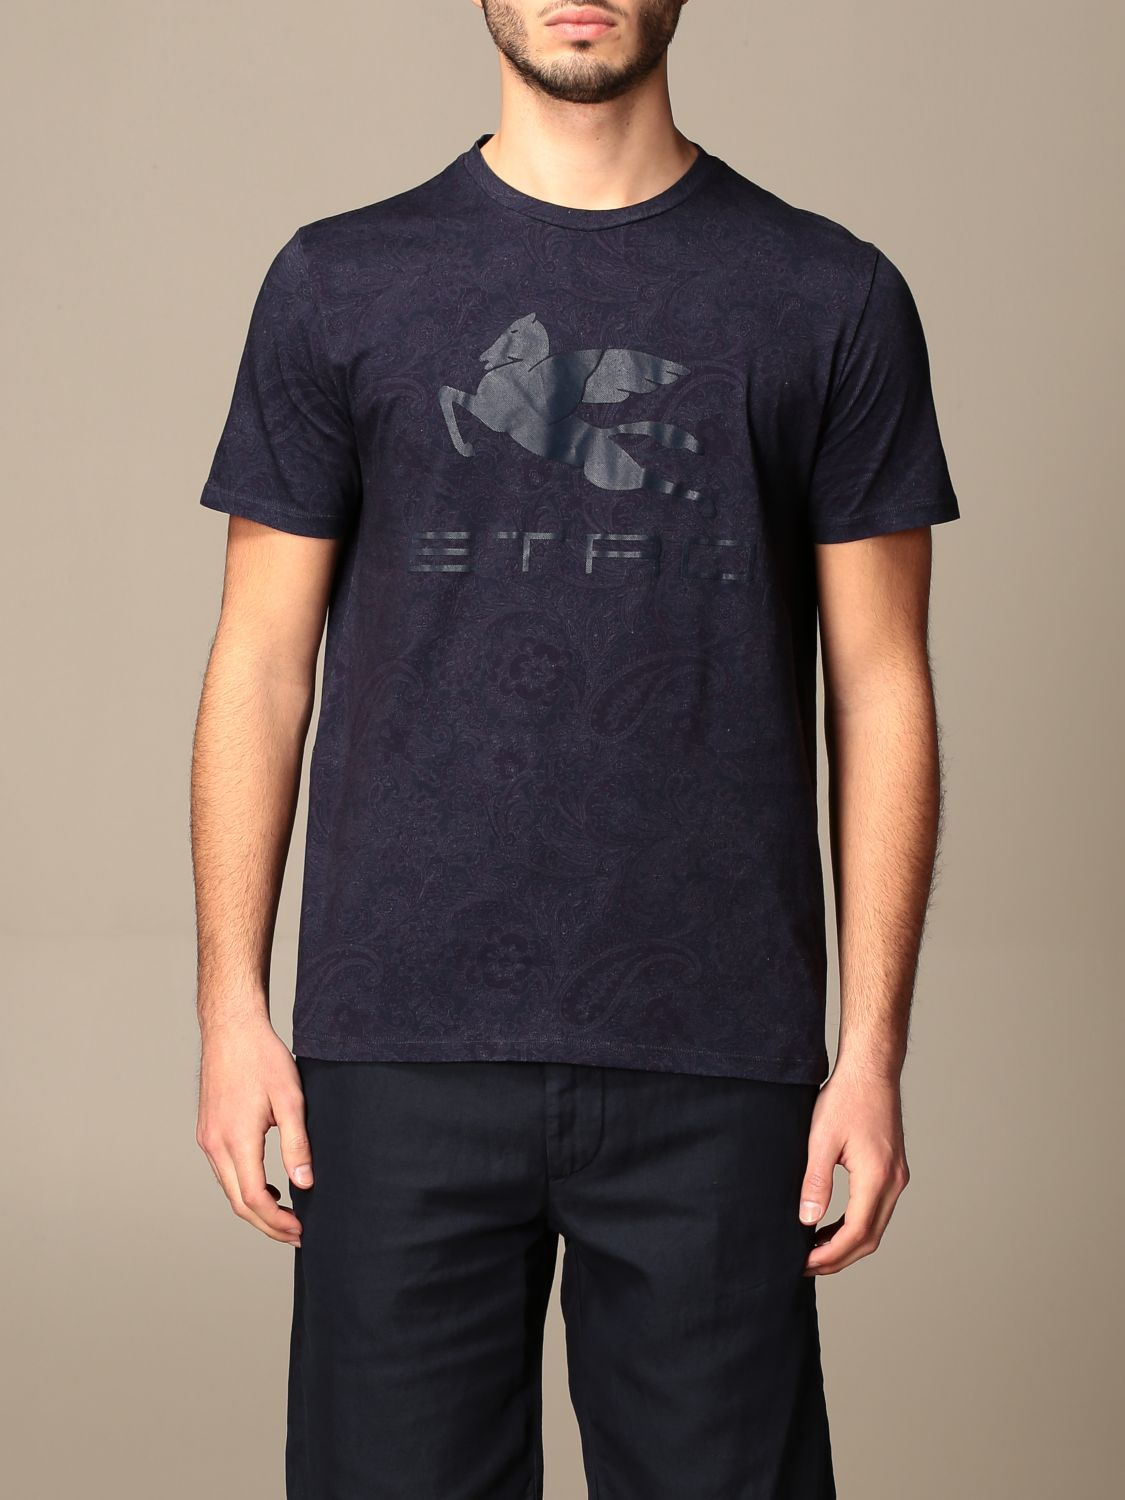 T-shirt Etro: Etro t-shirt in paisley patterned cotton with Pegasus gnawed blue 1